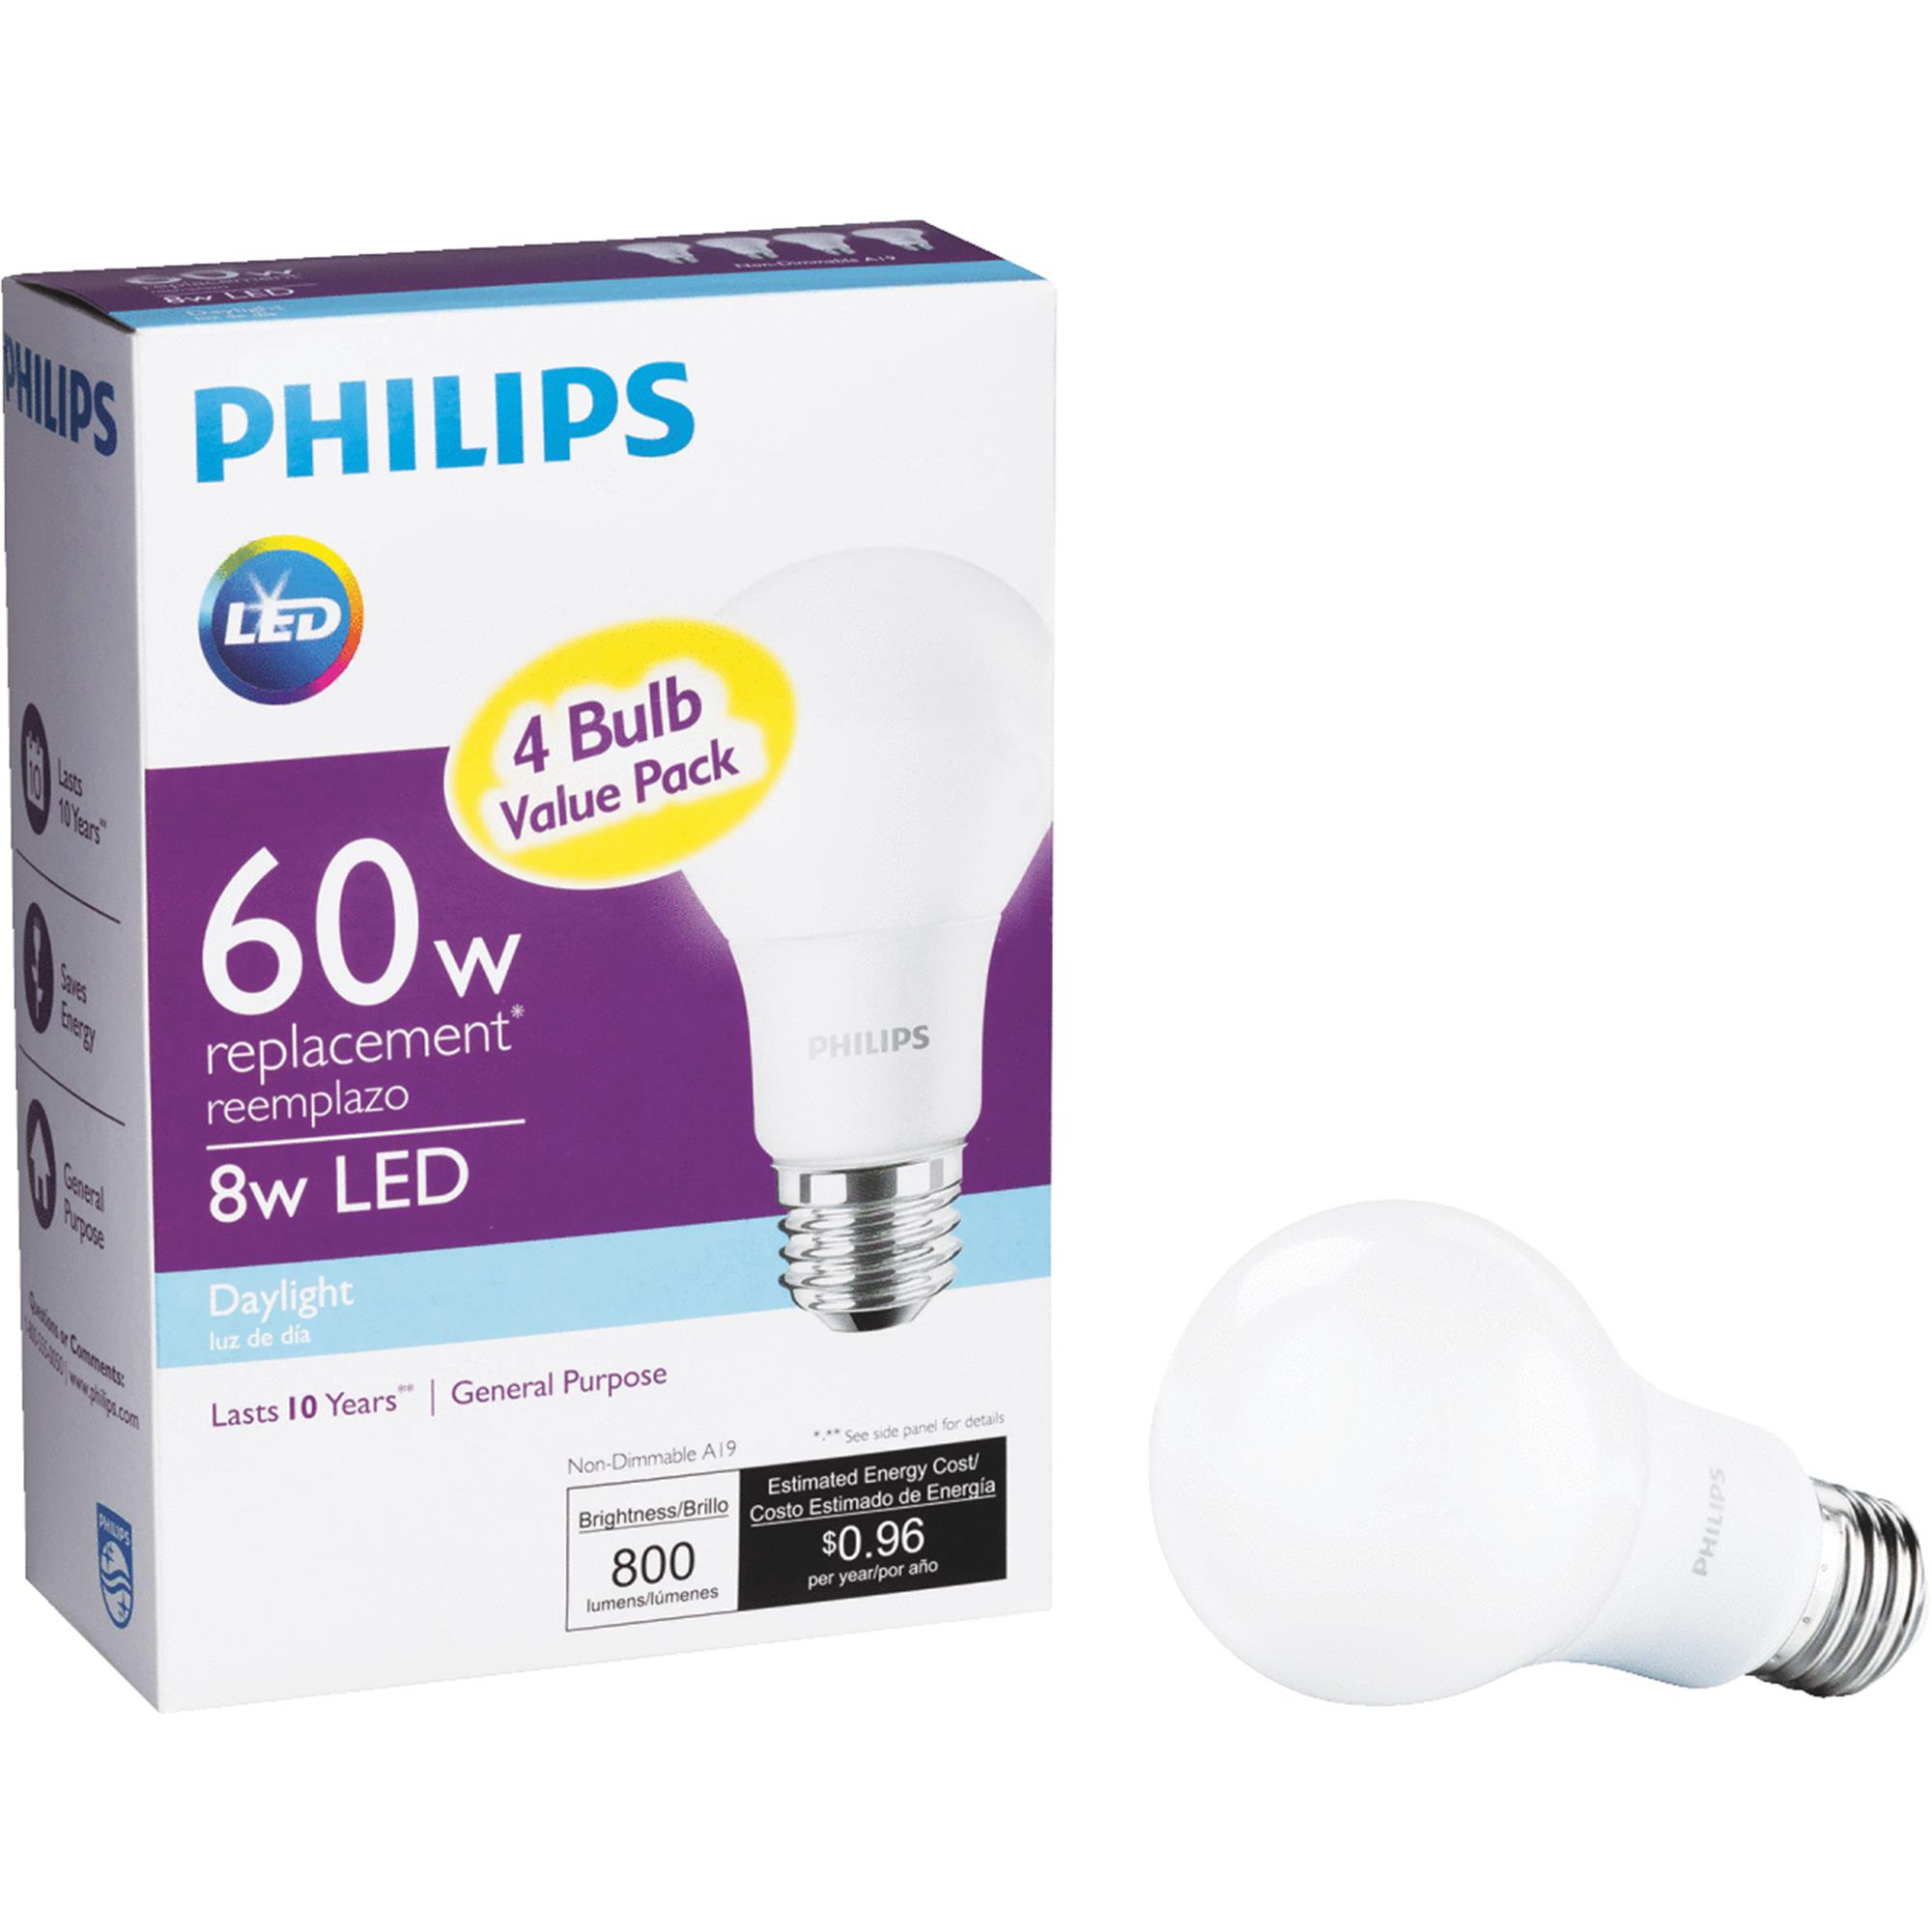 Philips LED Light Bulb, A19, Daylight, 60 WE, 4 Ct